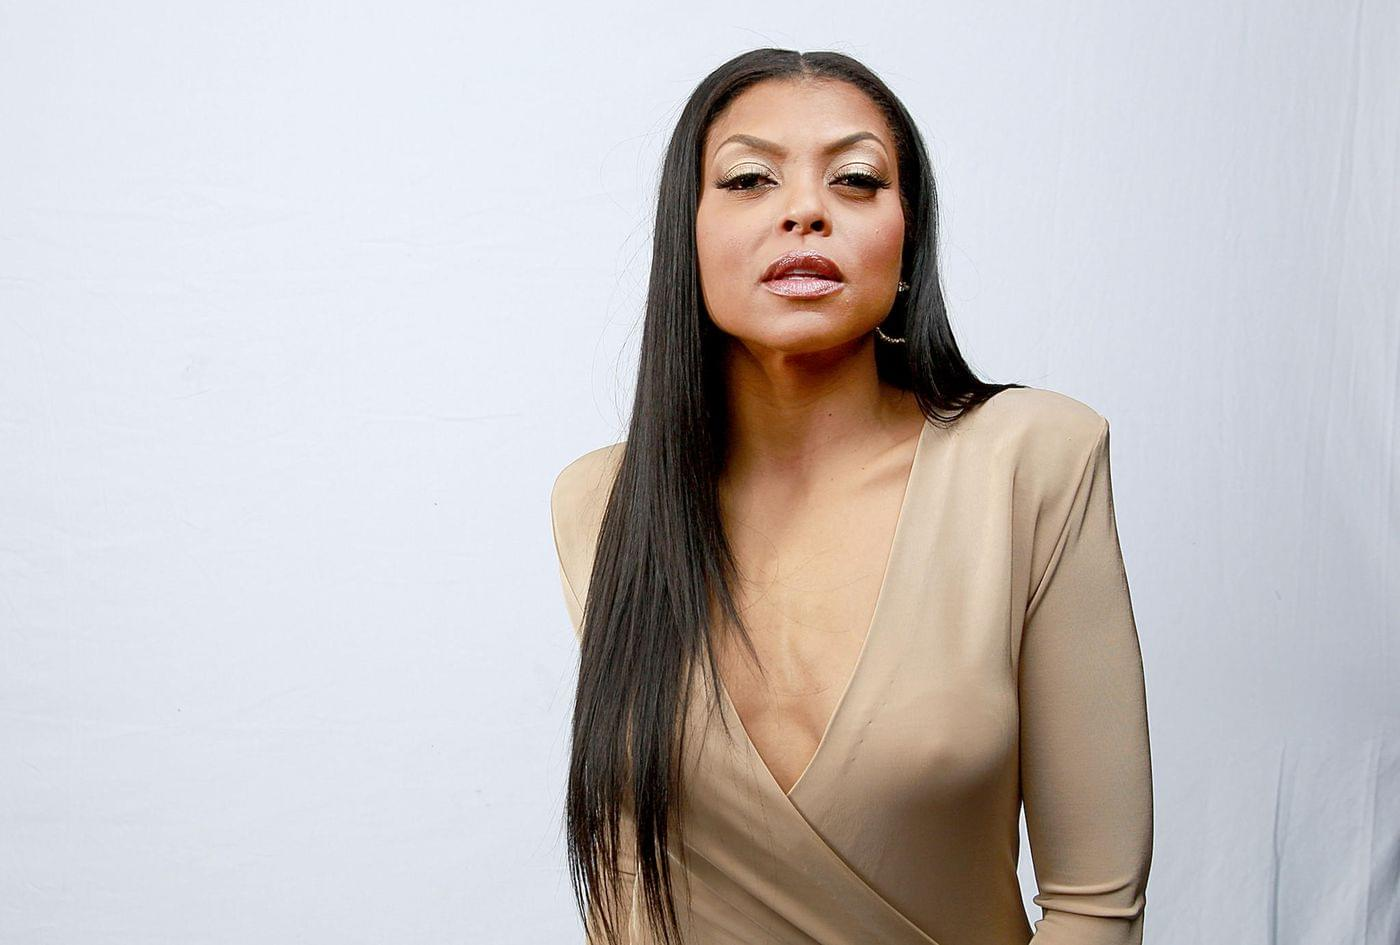 Taraji P. Henson and More Powerful Women Envision a World Without Sexism